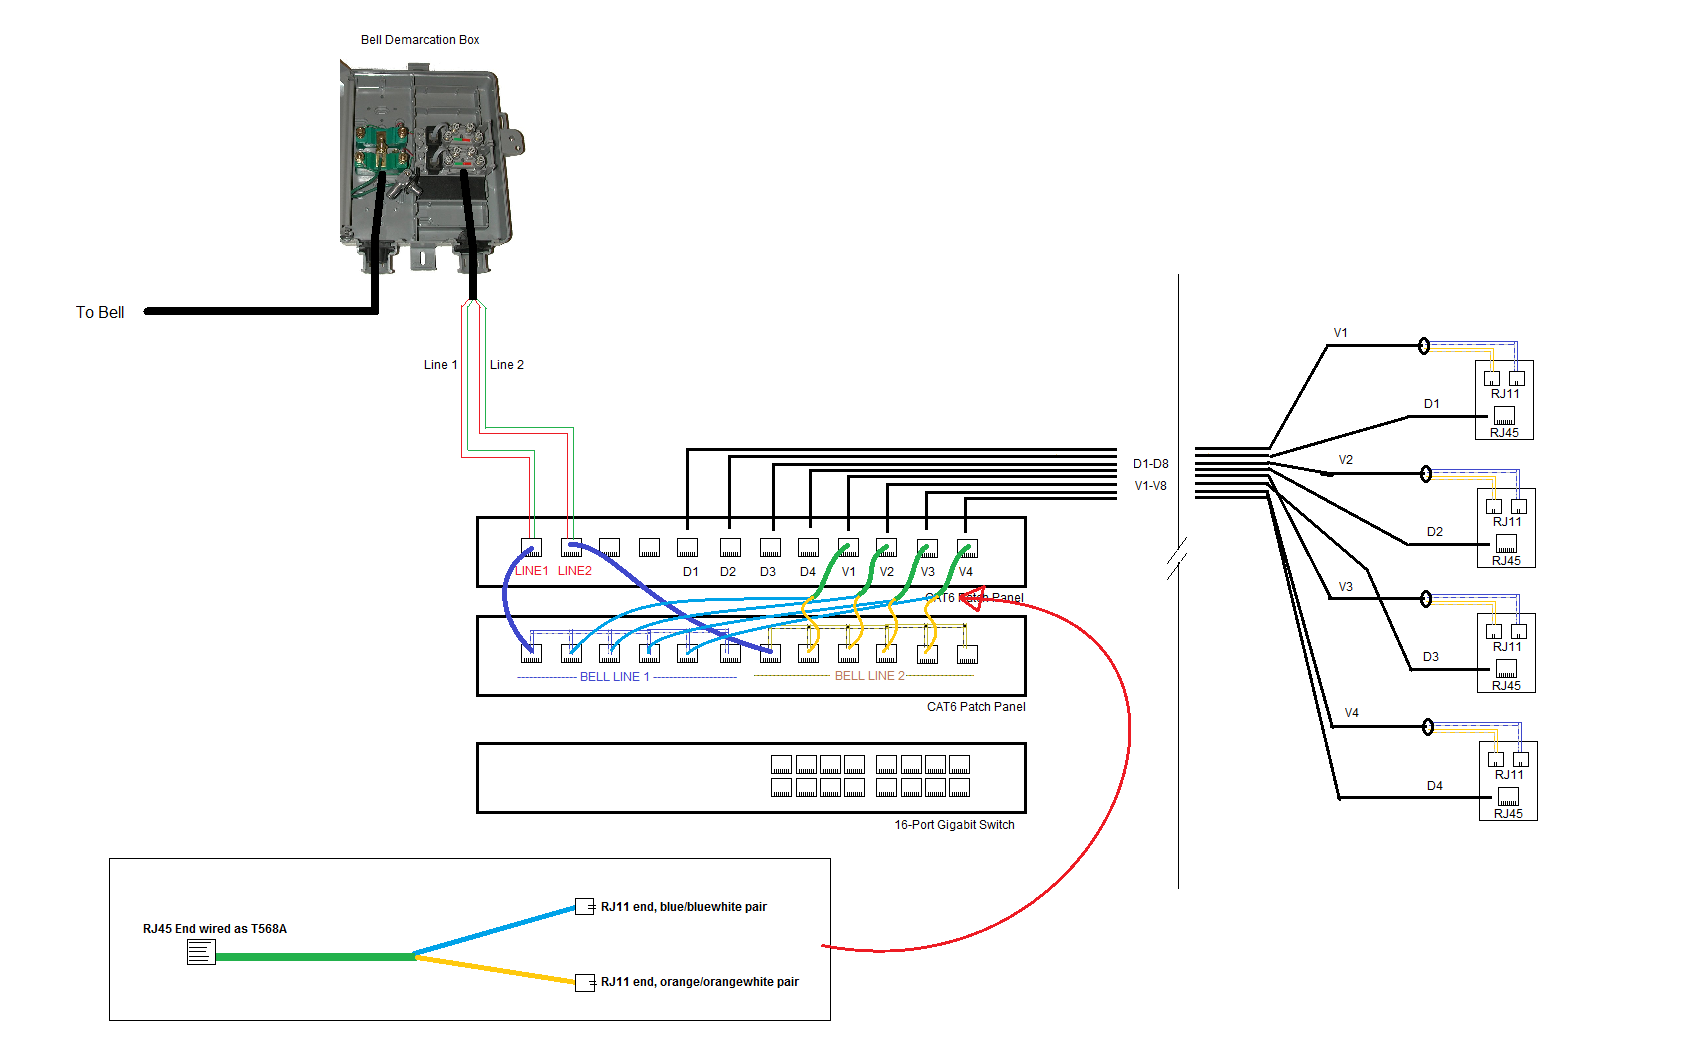 House Phone Line Wiring Diagram from filedb.experts-exchange.com